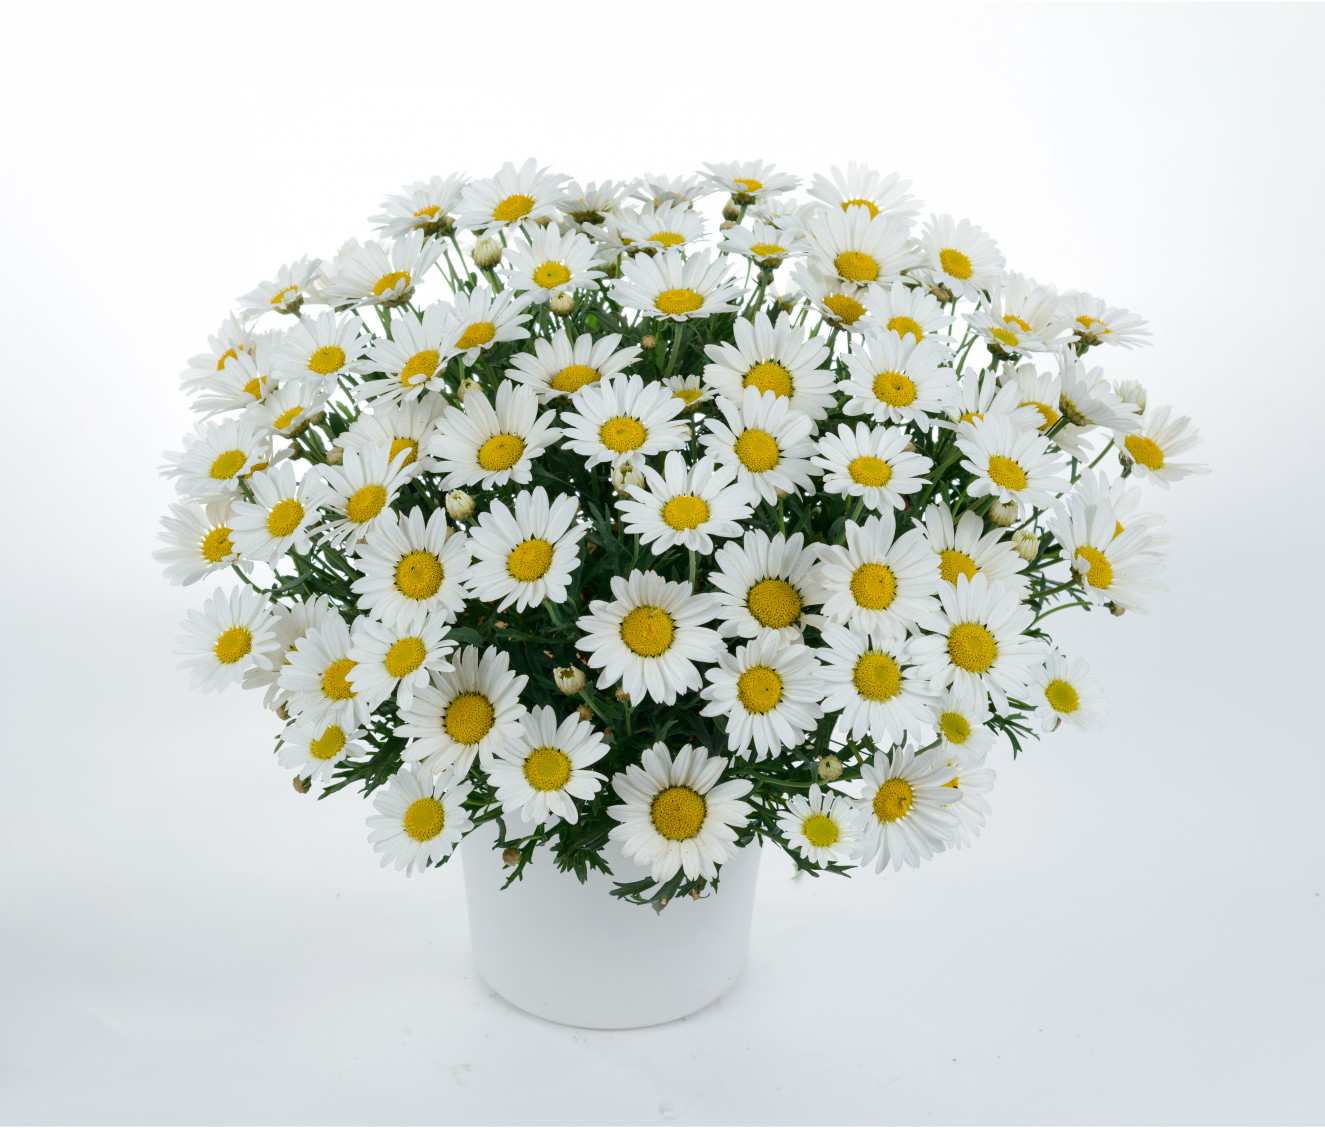 Argyranthemum frutescens Everest (goed).jpg.jpg